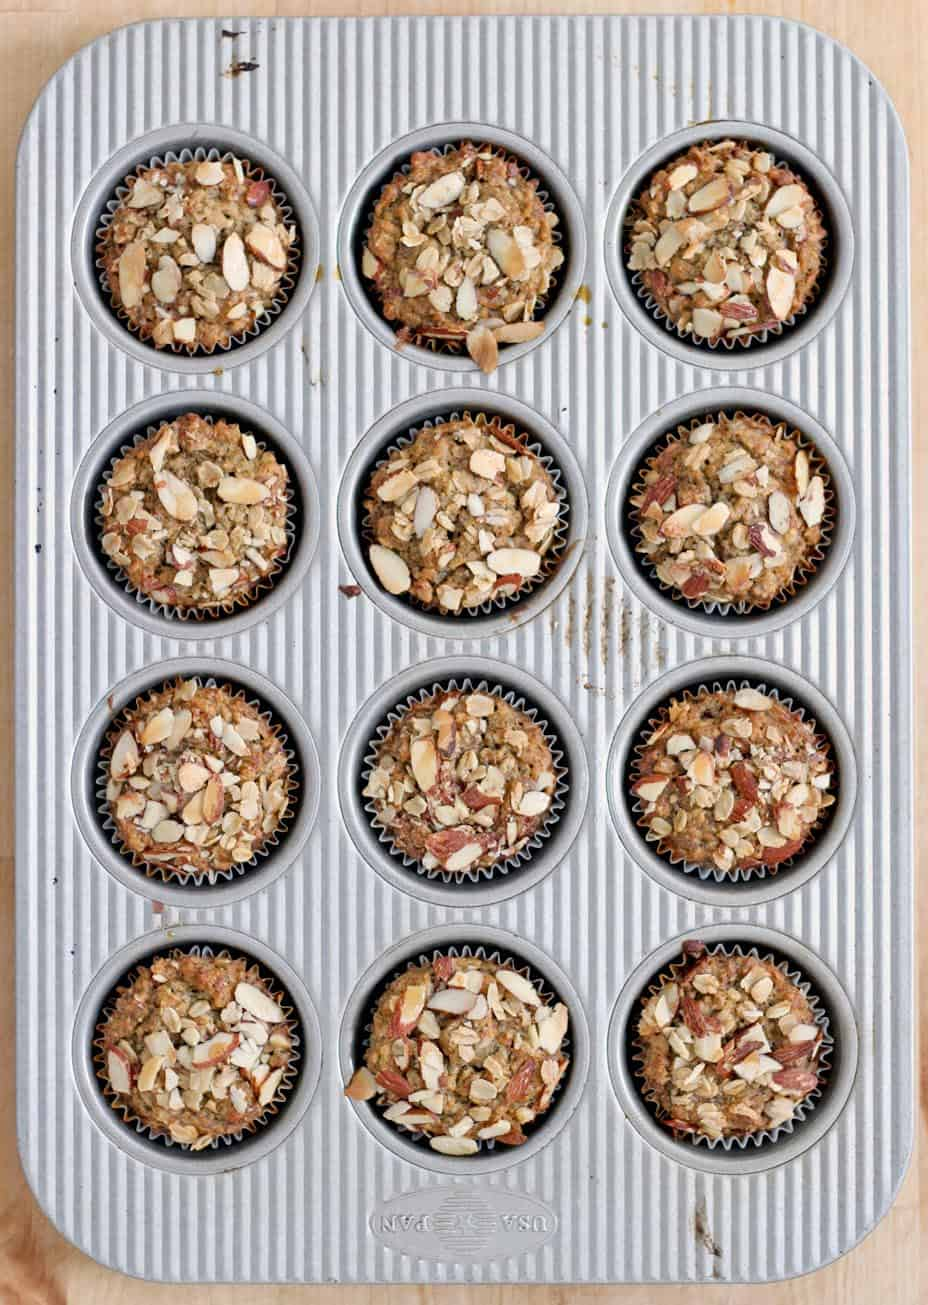 Bird's eye view of a muffin pan, filled with Maple Banana Oat and Nut Muffins.